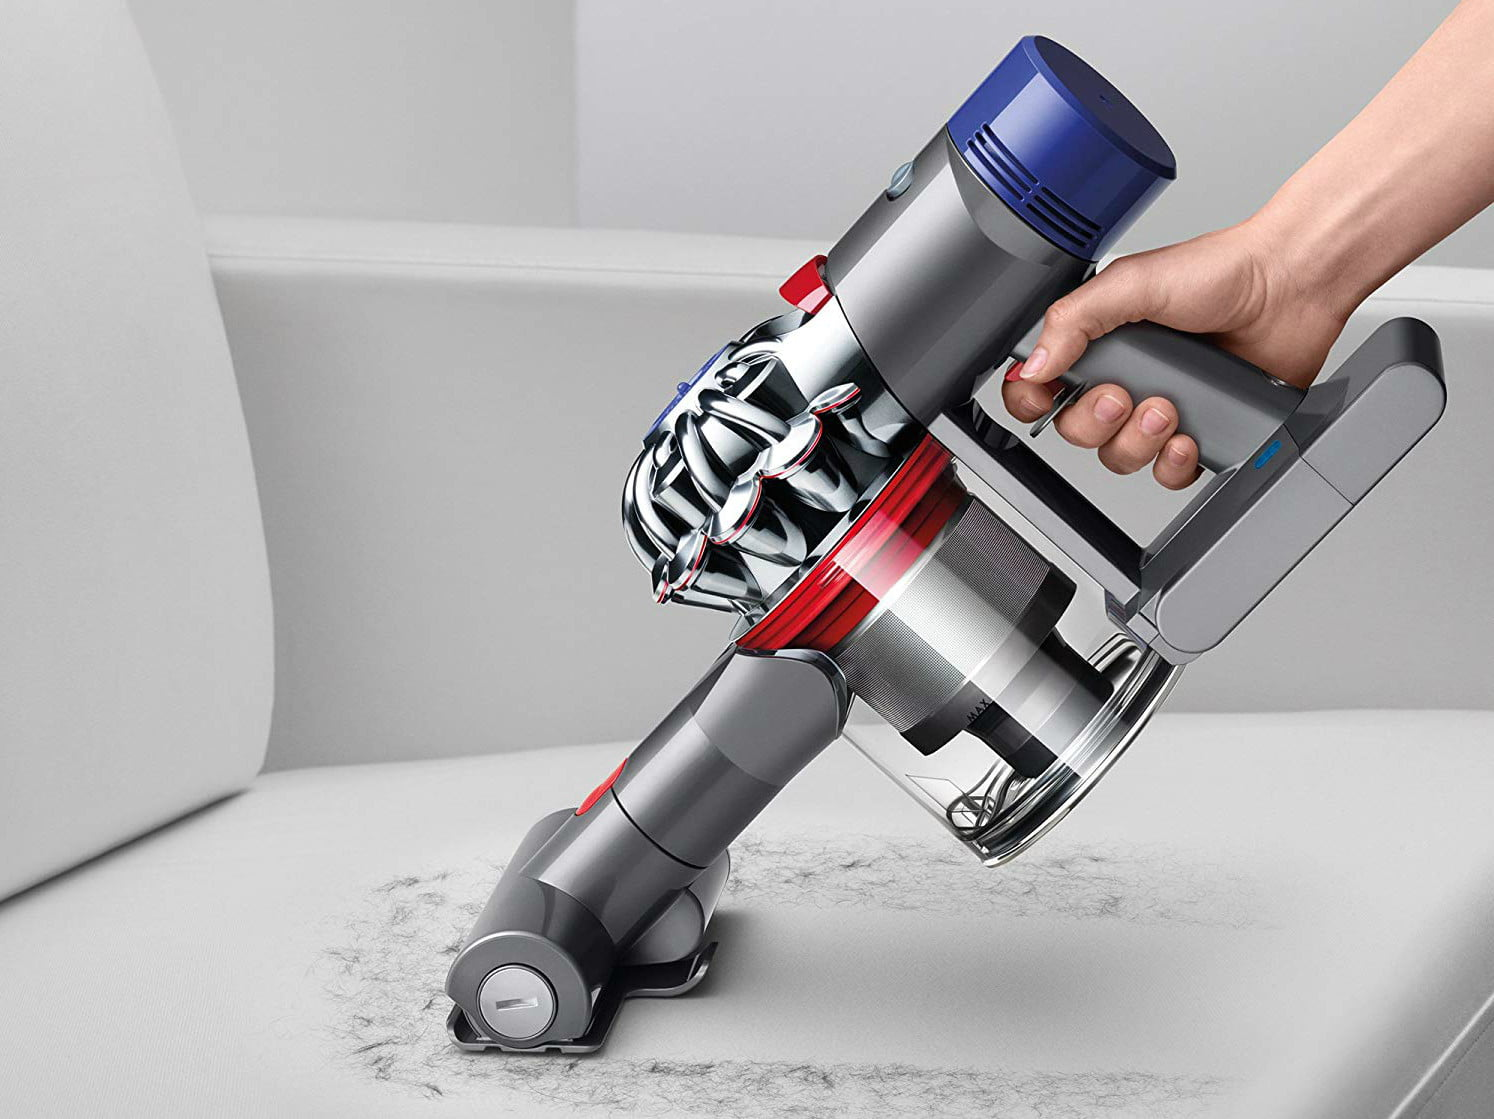 Snag the Dyson V8 Animal cordless stick vacuum for 40% less on Amazon